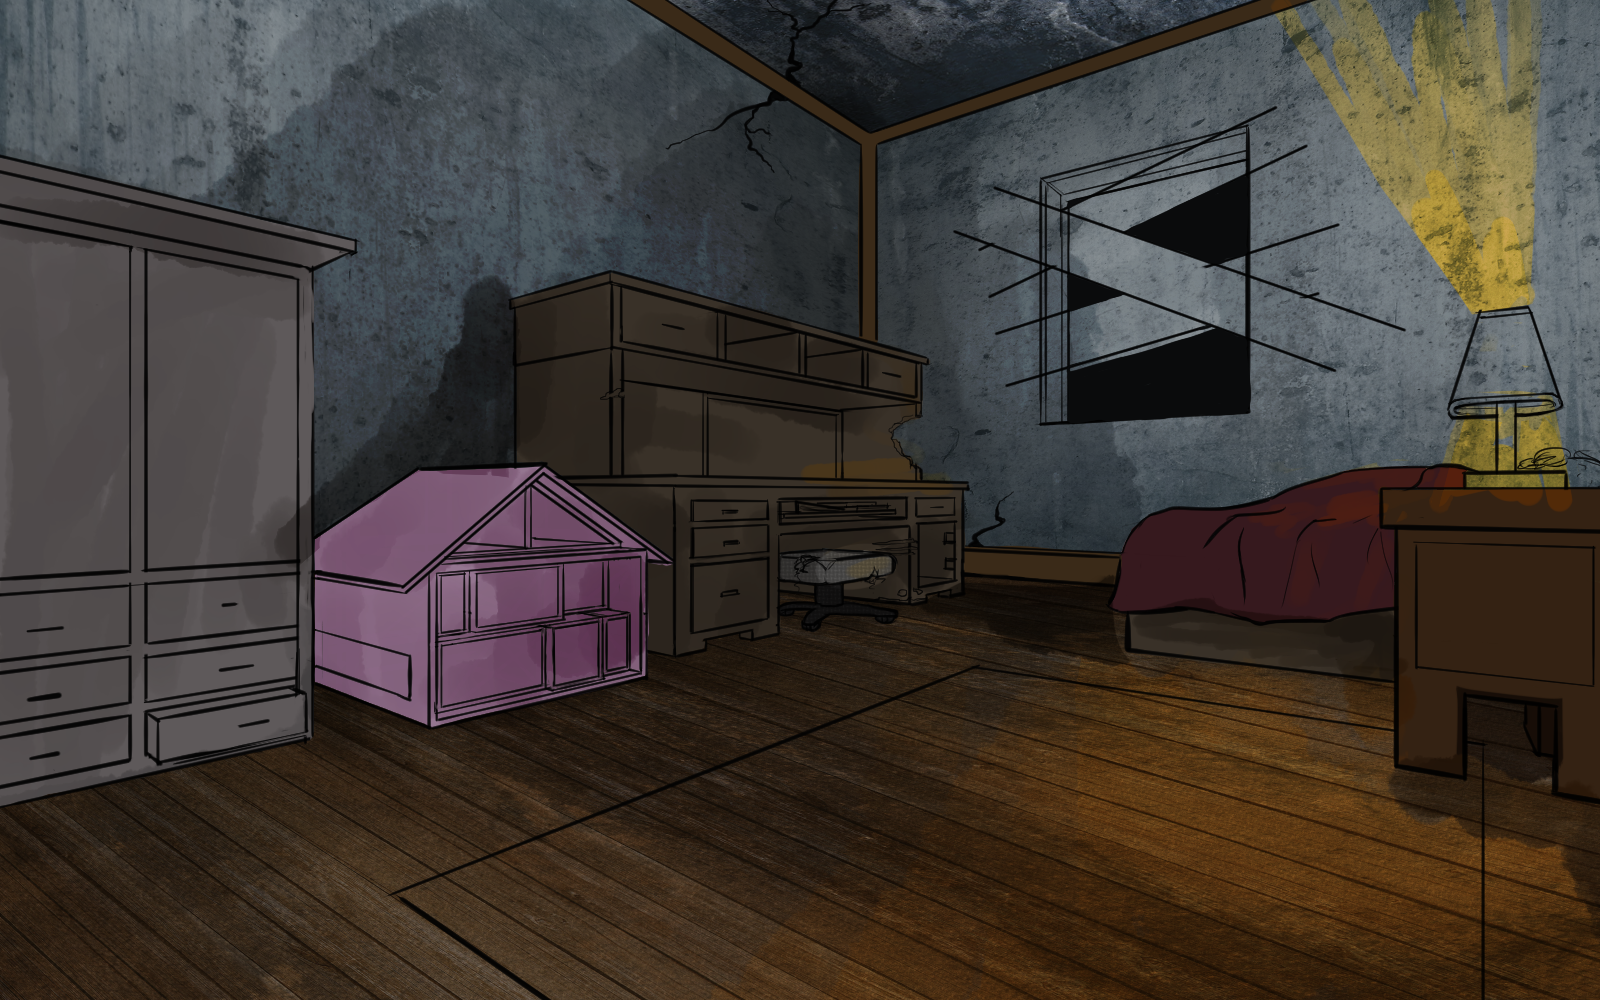 bedroom with boarded window and pink doll house video game